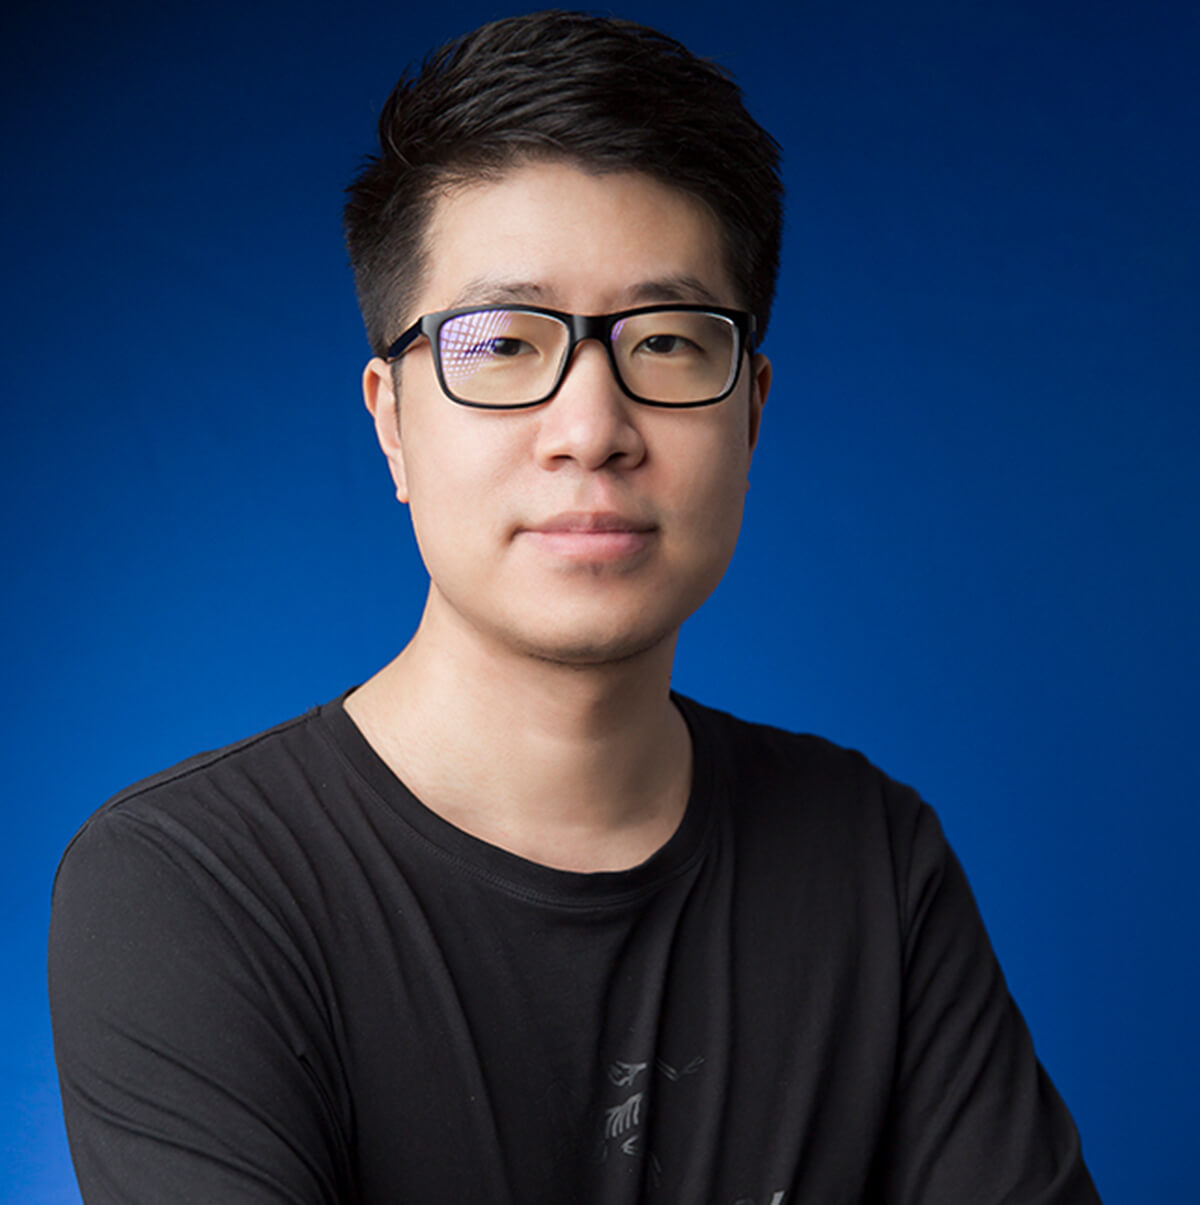 A headshot of DigiPen graduate Aaron Yang.